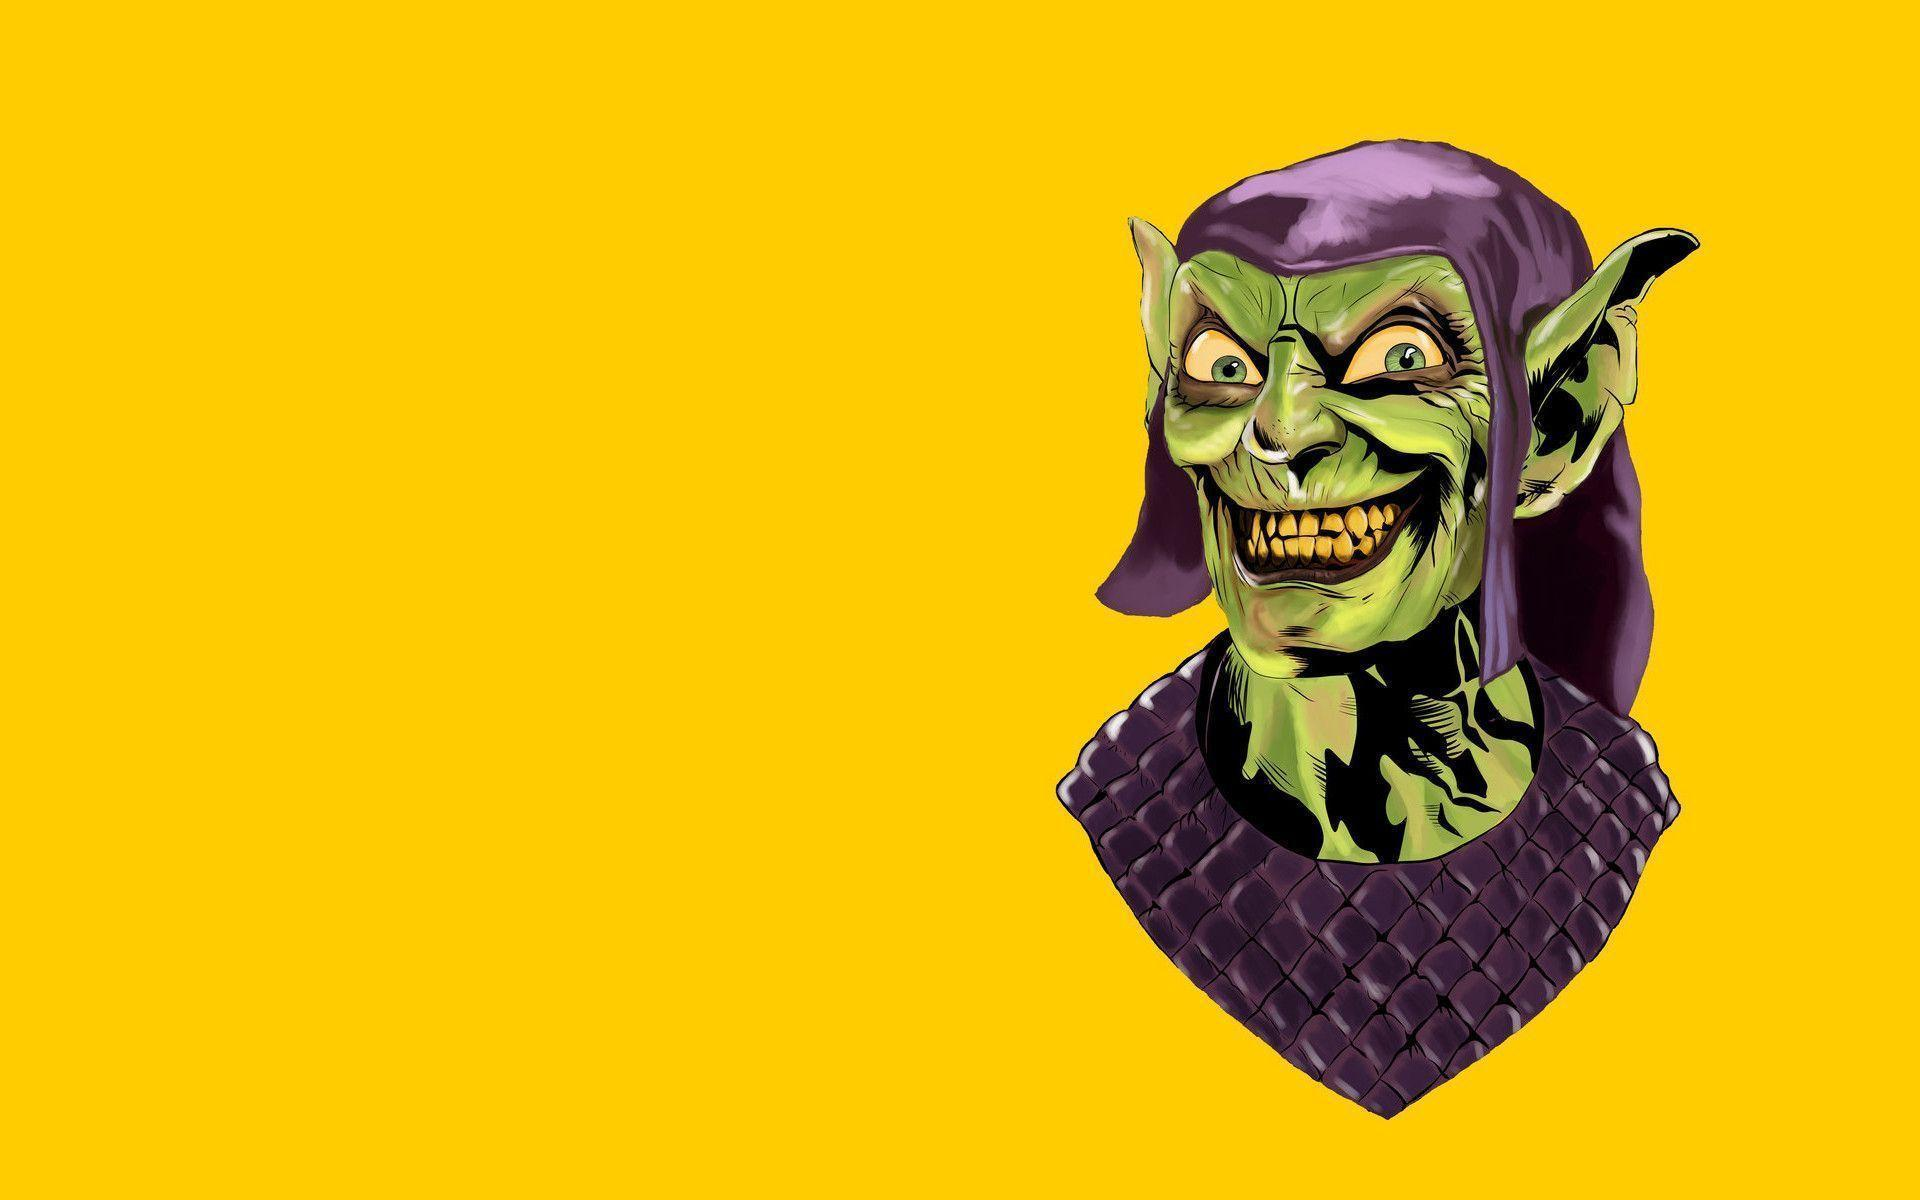 Download wallpapers minimalism, orange background, The Green Goblin